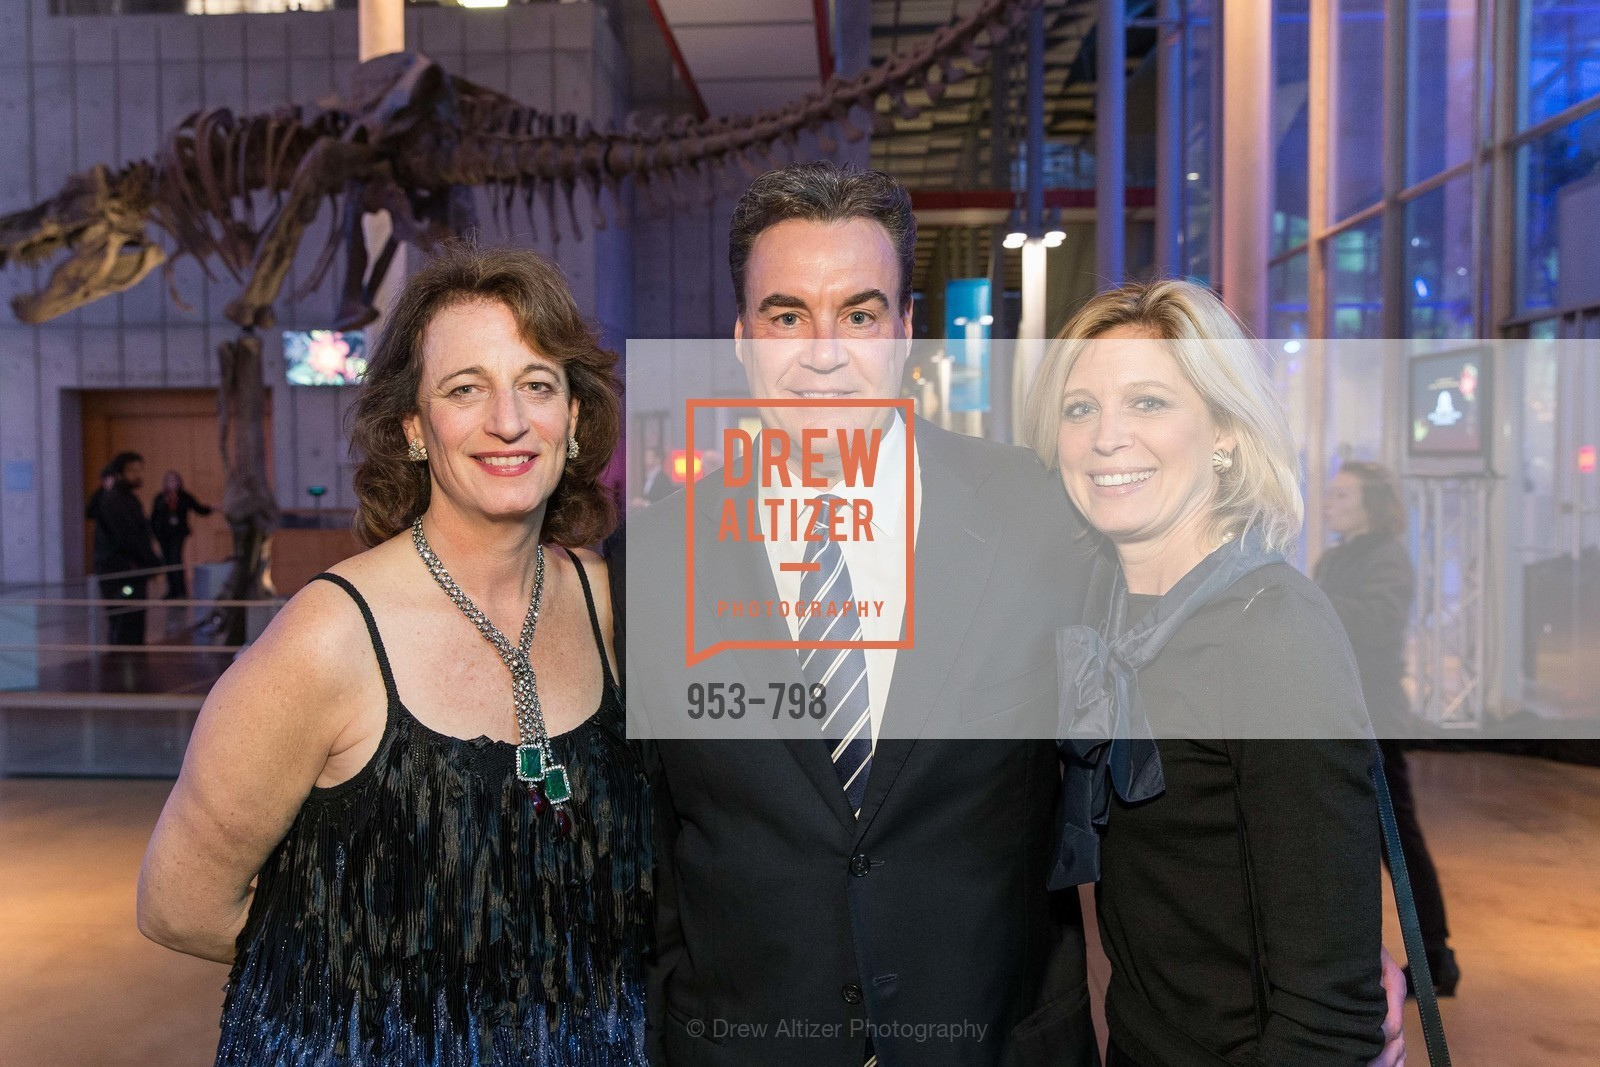 Theo Schwabacher, Jim Messemer, Debbie Messemer, CALIFORNIA ACADEMY OF SCIENCES - Big Bang Gala 2015, US, April 23rd, 2015,Drew Altizer, Drew Altizer Photography, full-service agency, private events, San Francisco photographer, photographer california